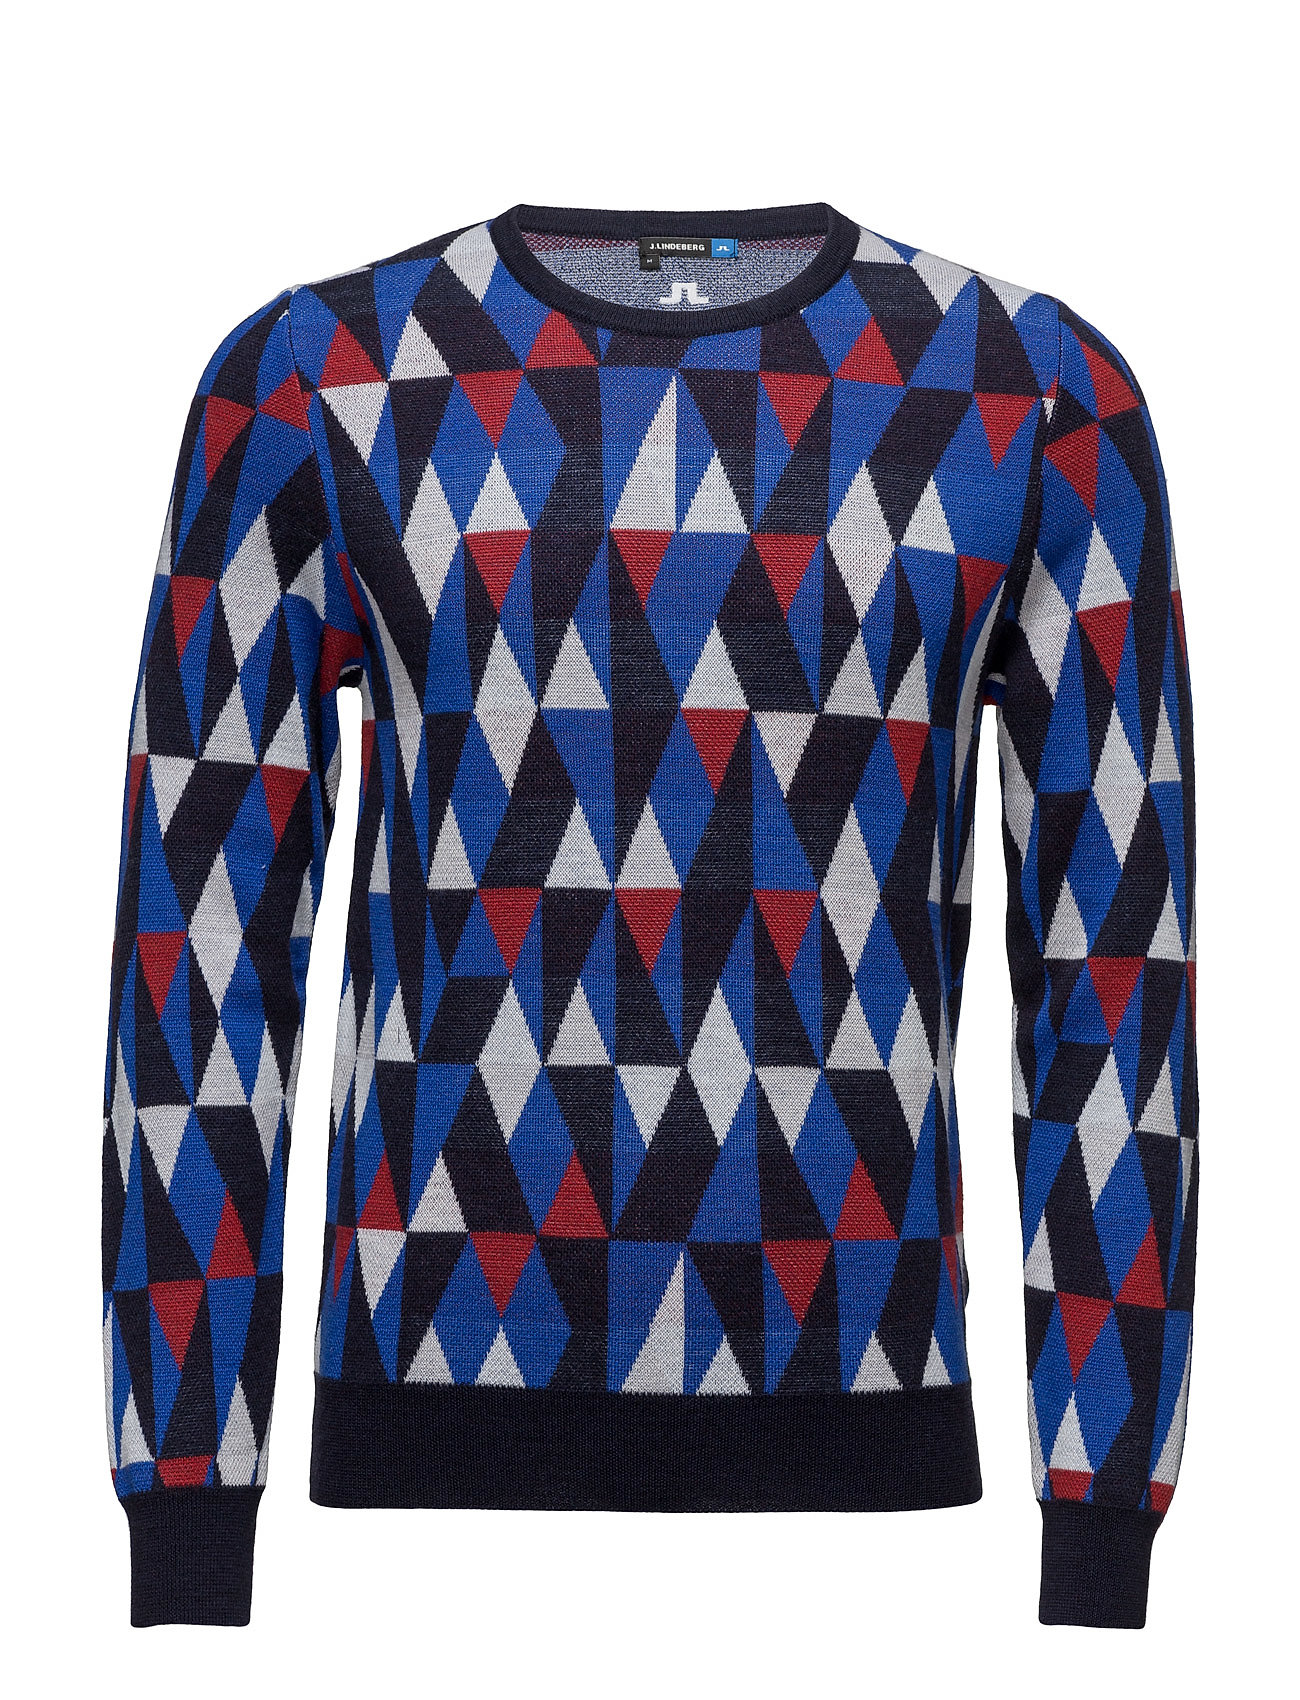 M Argyle Sweater True Merino J. Lindeberg Golf Sports toppe til Mænd i